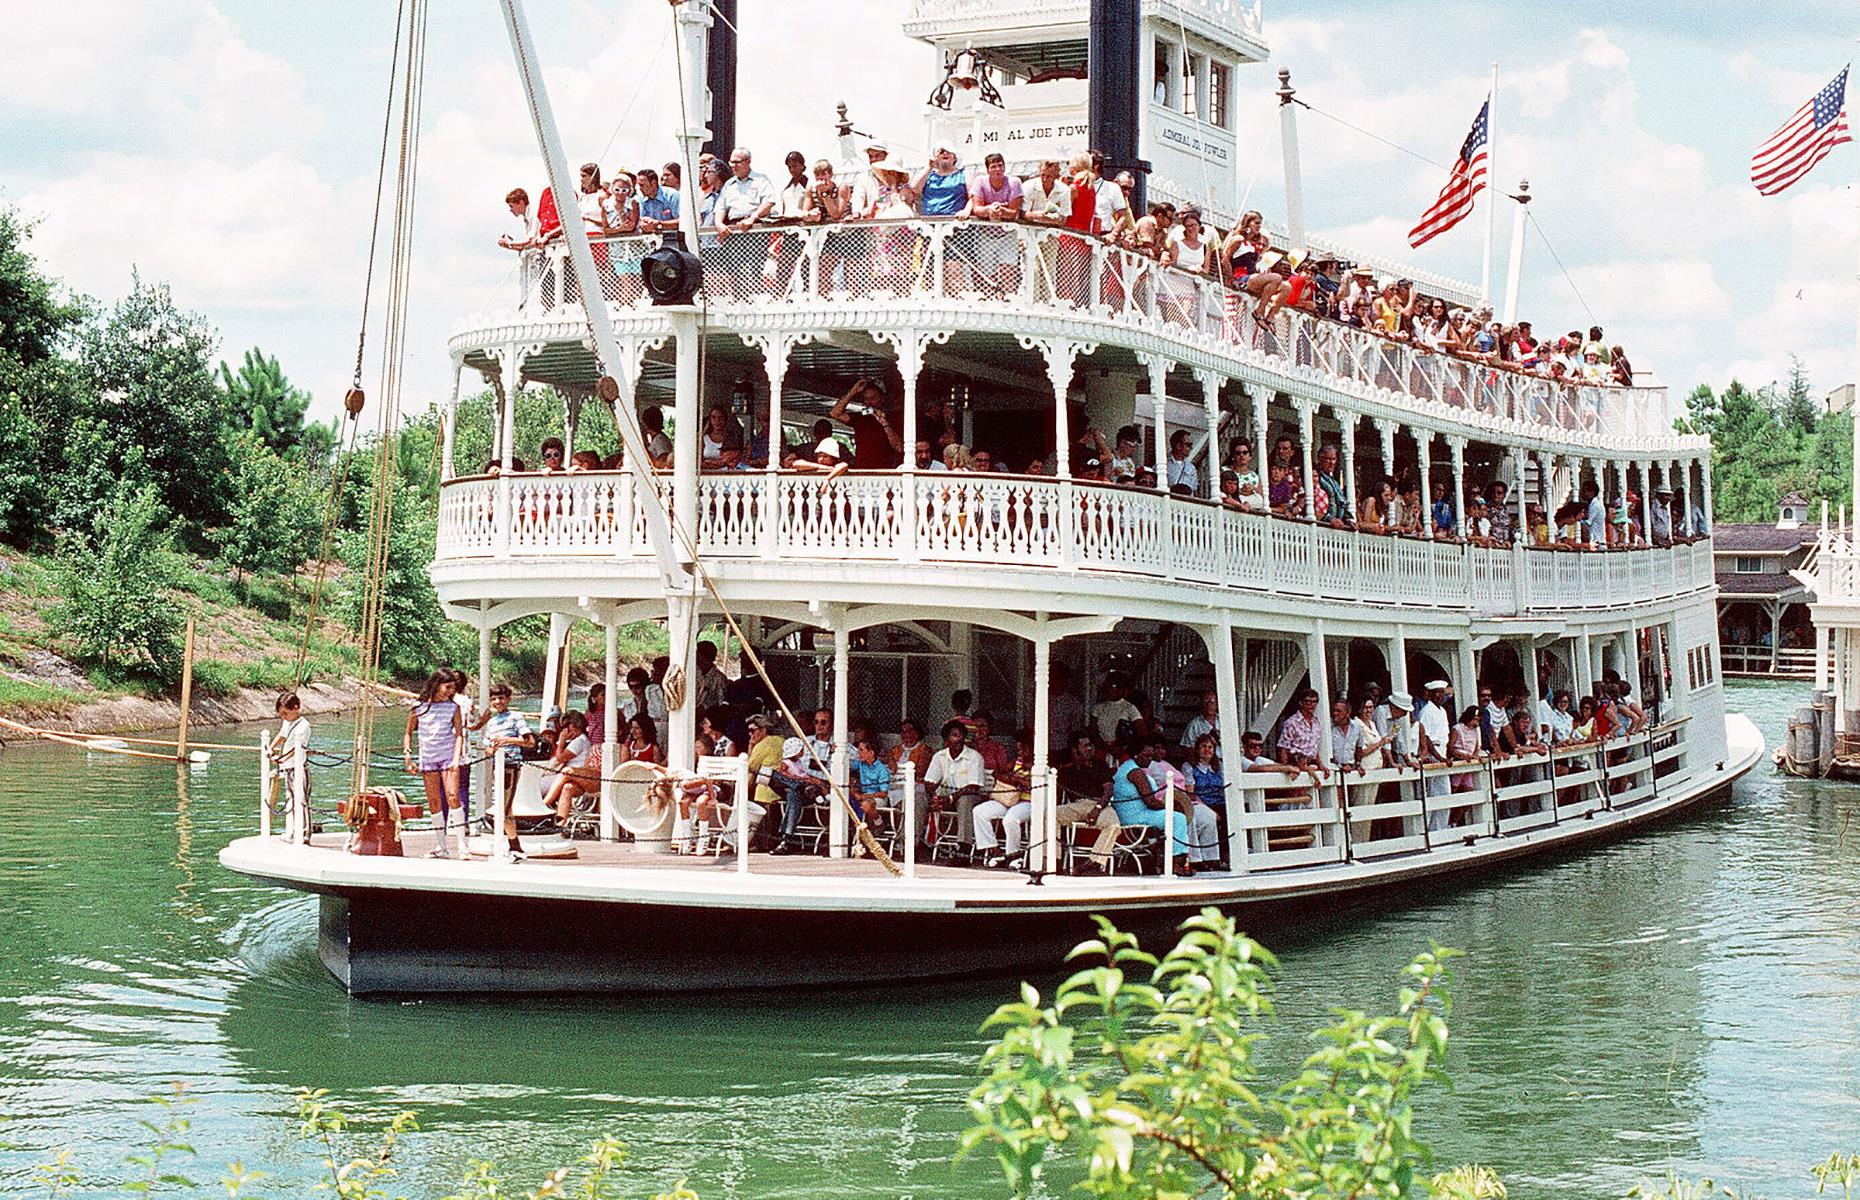 Slide 23 of 38: Today Walt Disney World Resort is Disney's flagship site, and is much larger than its California counterpart. Magic Kingdom was the first of four mammoth Floridian theme parks. The Admiral Joe Fowler Riverboat (pictured), named for the retired admiral who oversaw construction for the Disney parks, was an early amusement here.